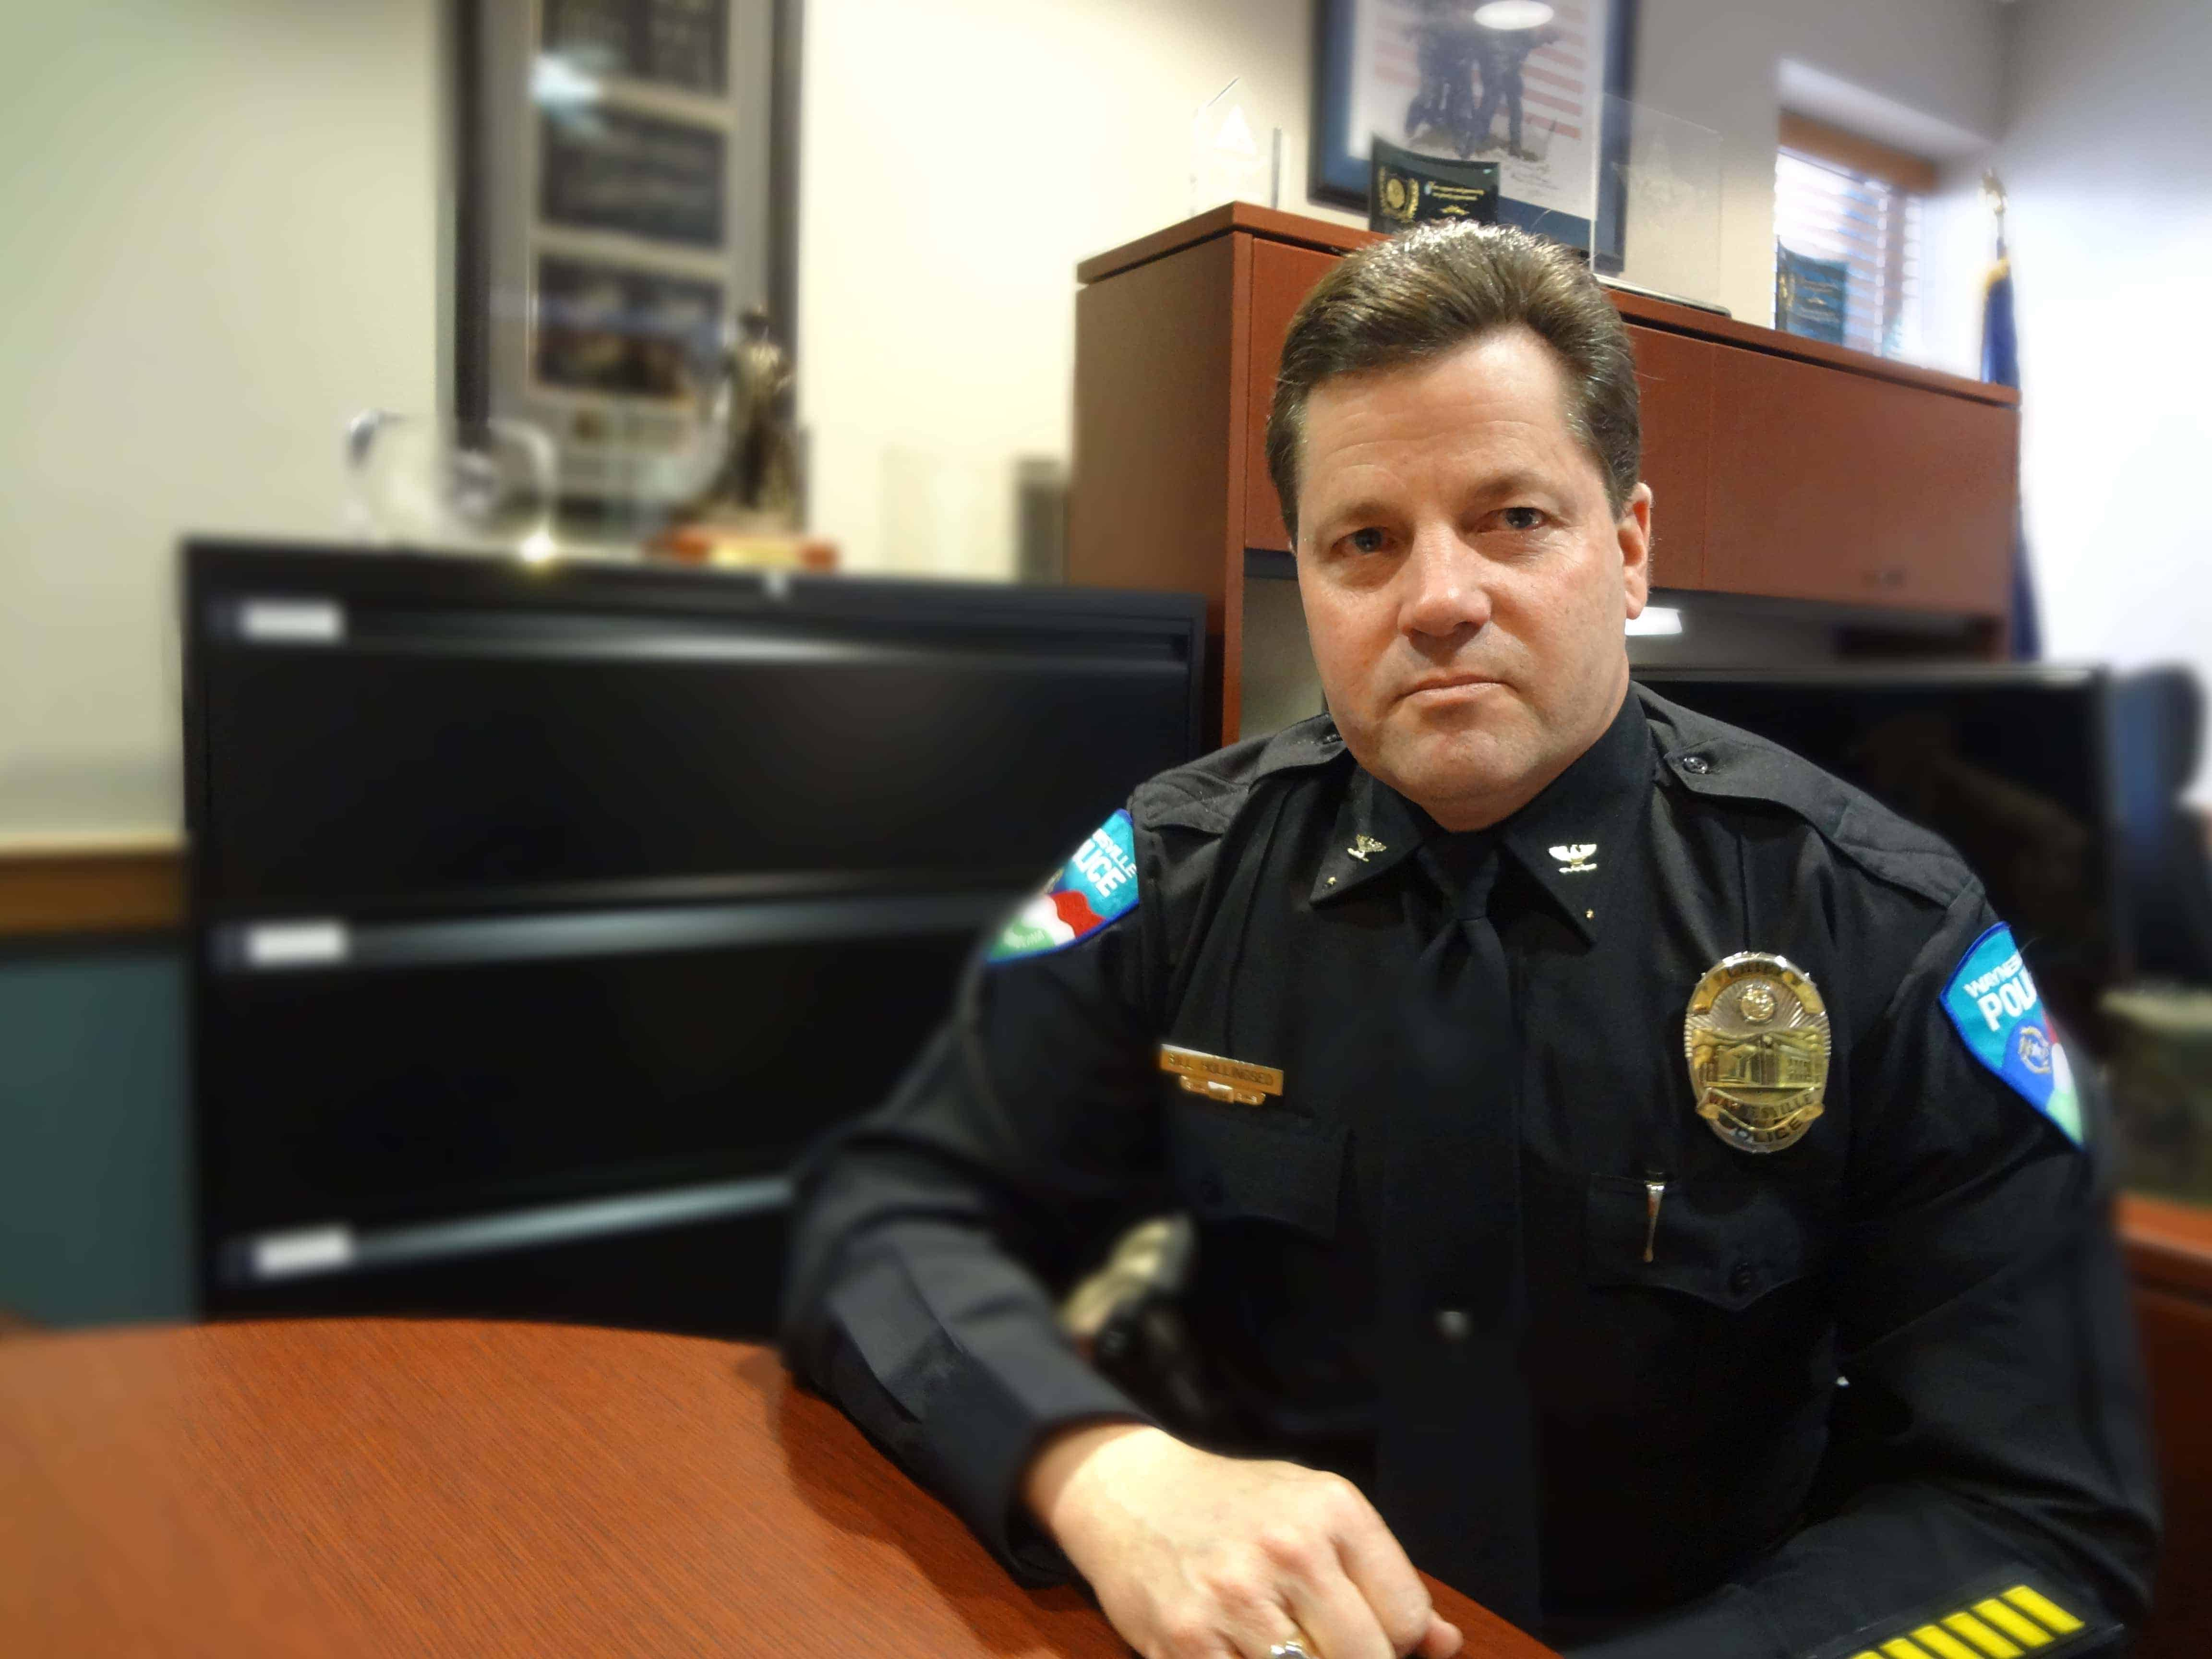 """Waynesville, North Carolina, Police Chief Bill Hollingsed said the drug death of an 18-month-old girl caused him to think about new approaches to fighting opioids. """"How can you witness this ... and not say, 'We've got to make a change. We've got to make a difference.'"""" (Photo by Taylor Sisk)"""